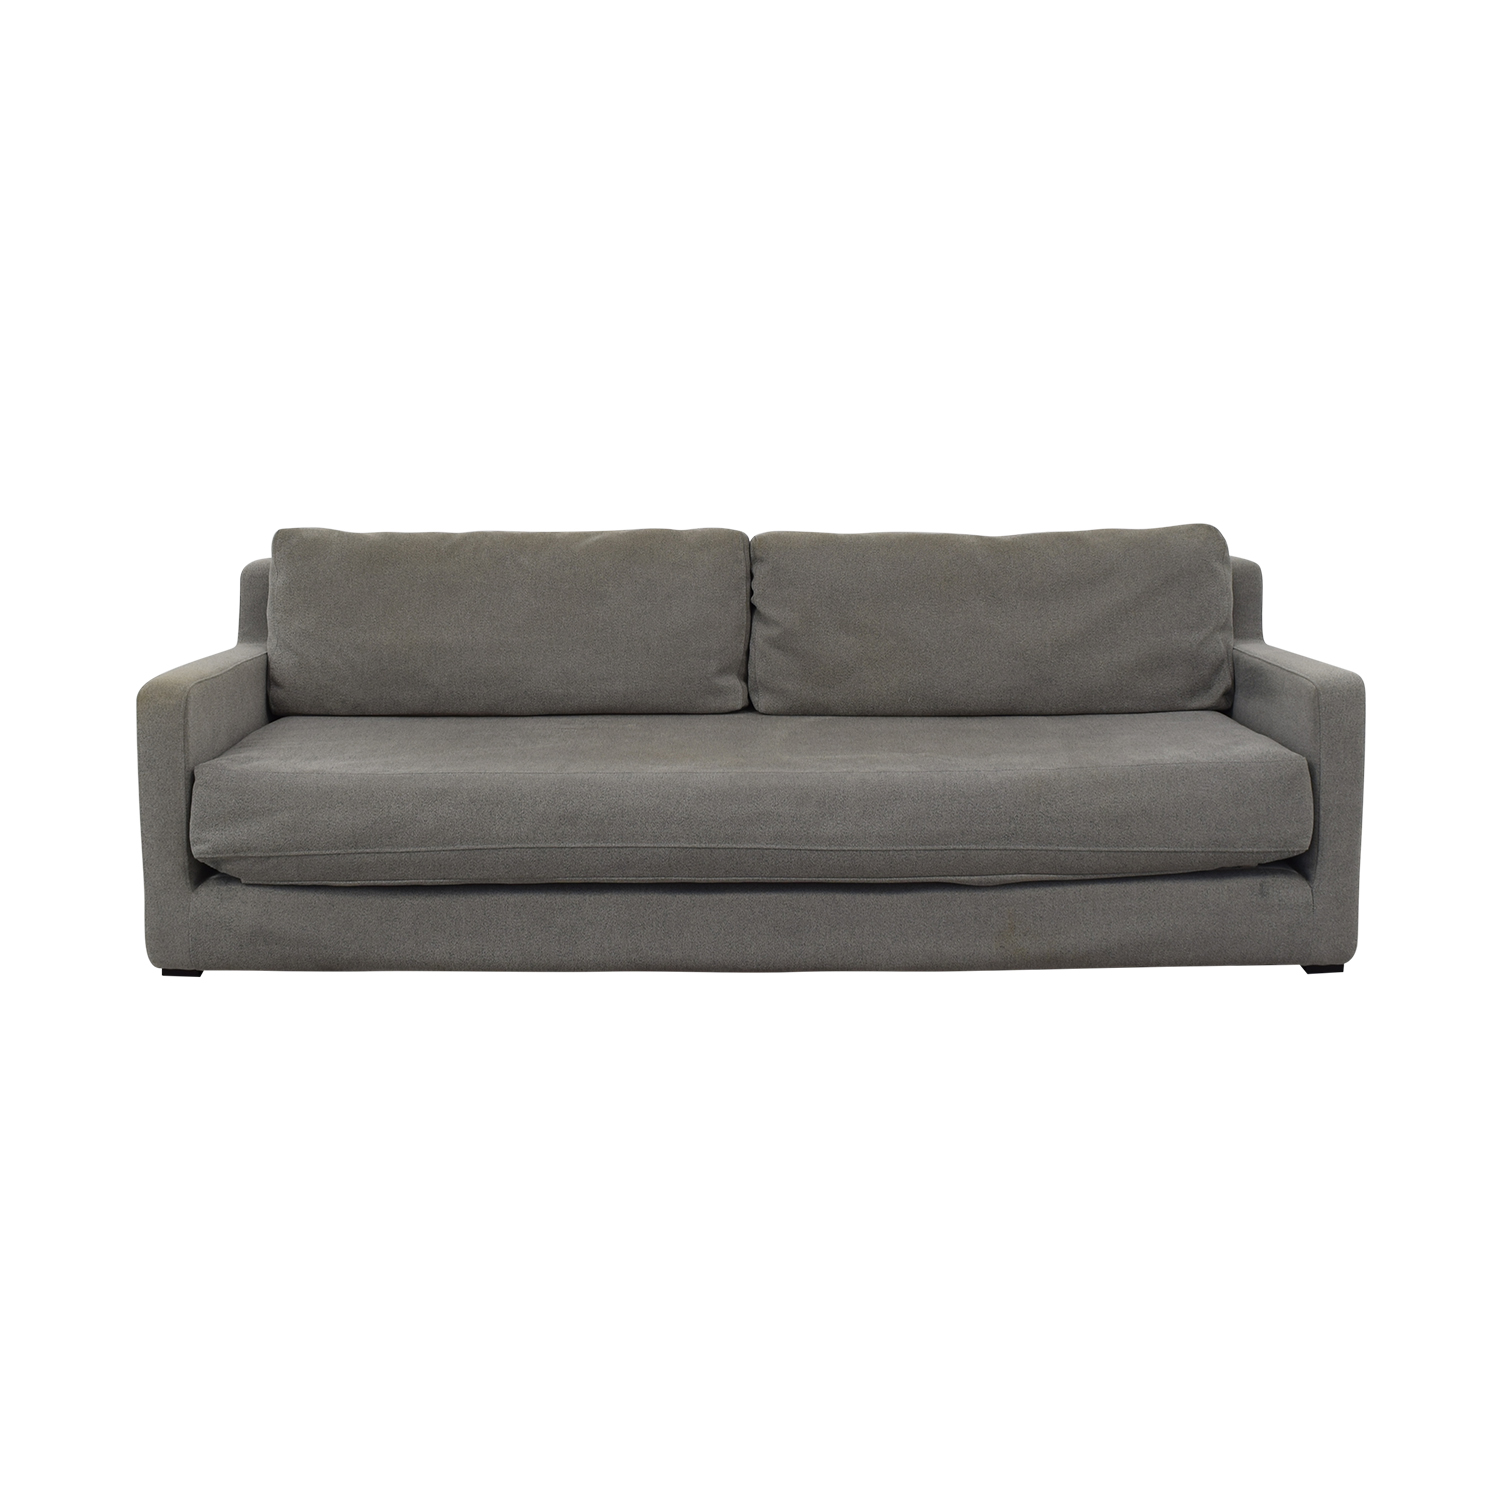 Gus Modern Gus Modern Fabric Sleeper Sofa on sale